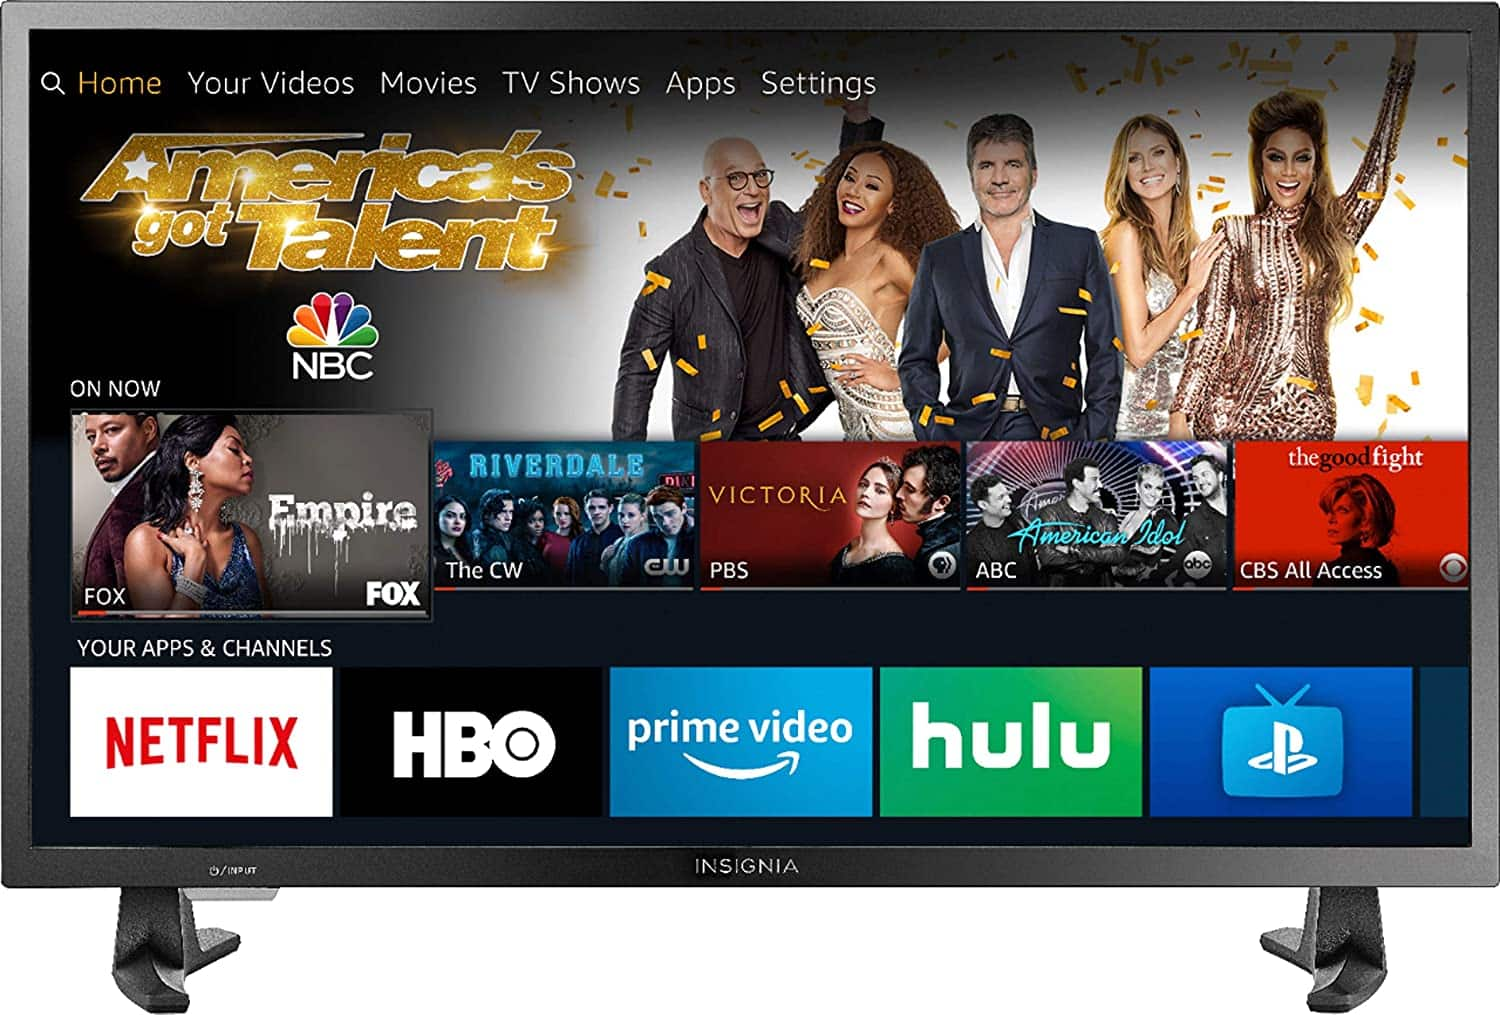 Insignia NS-32DF310NA19 32-inch Smart HD TV - Fire TV Edition with Alexa Voice Remote :	$129.99 & FREE Shipping -Amazon